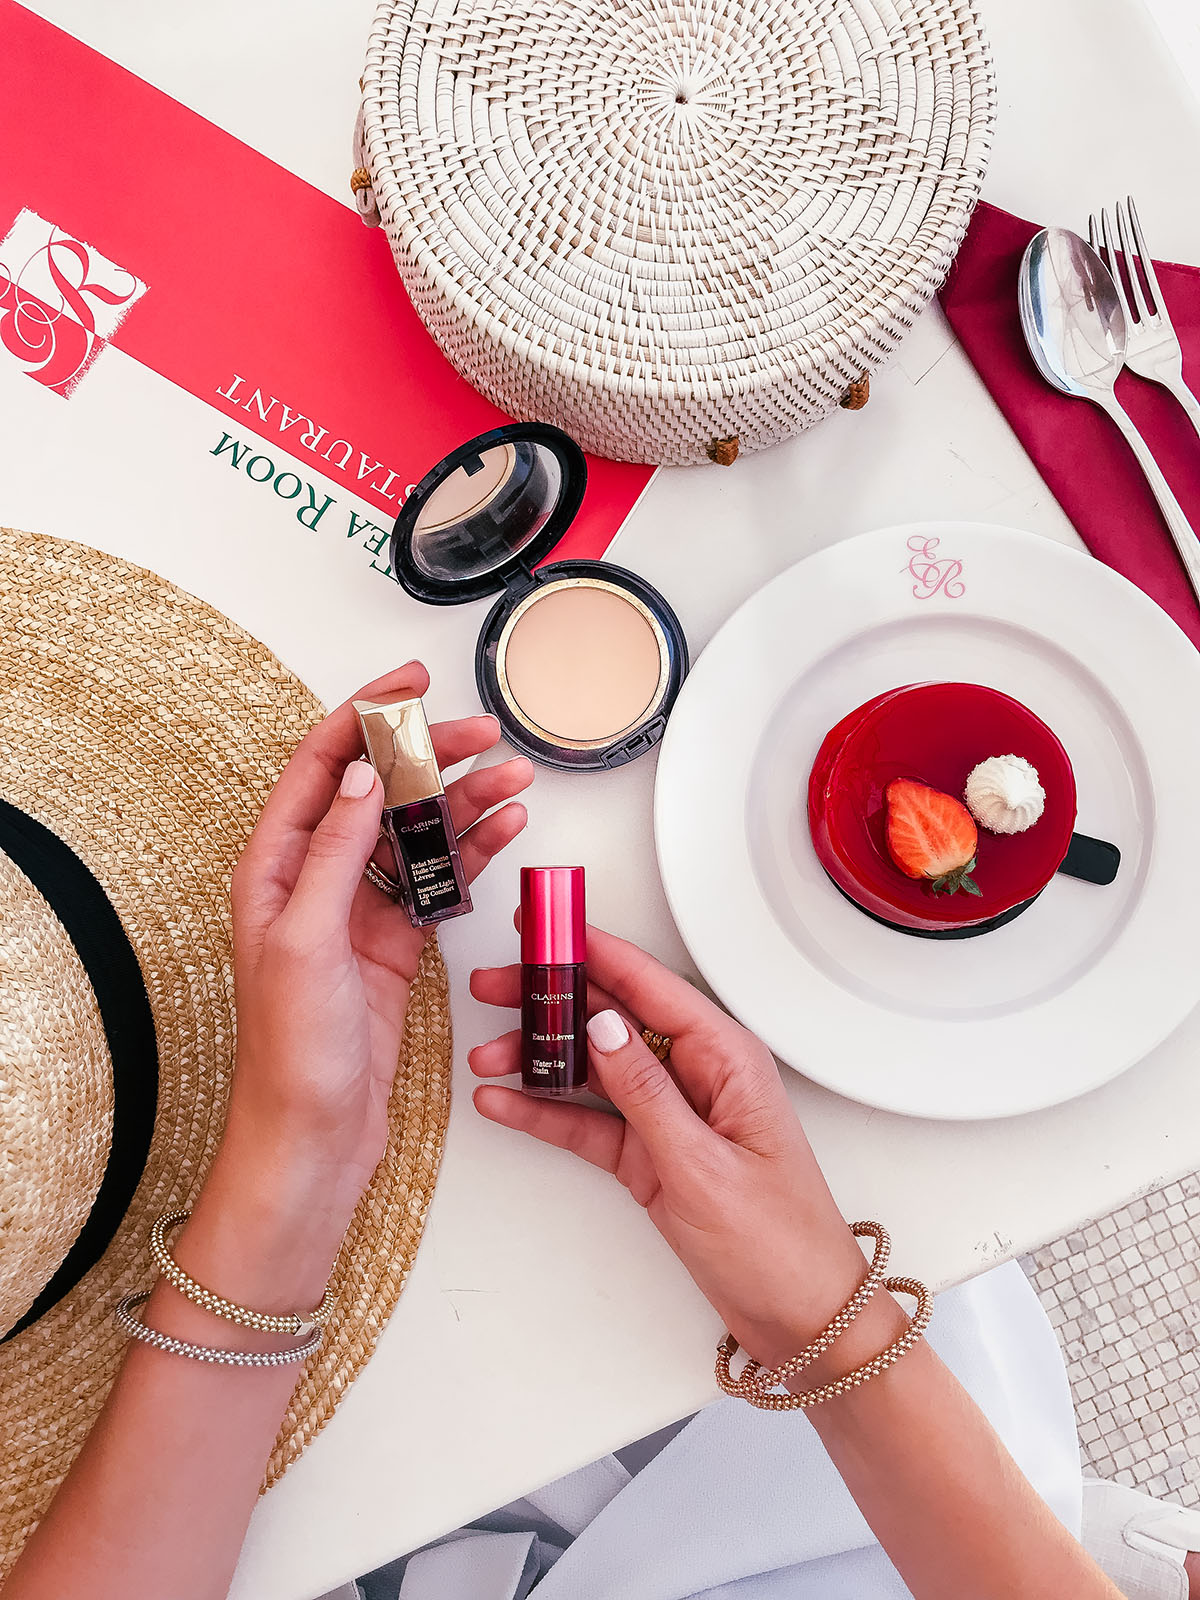 Long-Lasting Lip Products For the Perfect Pout | Clarins Lip Oil and Water Lip Stain